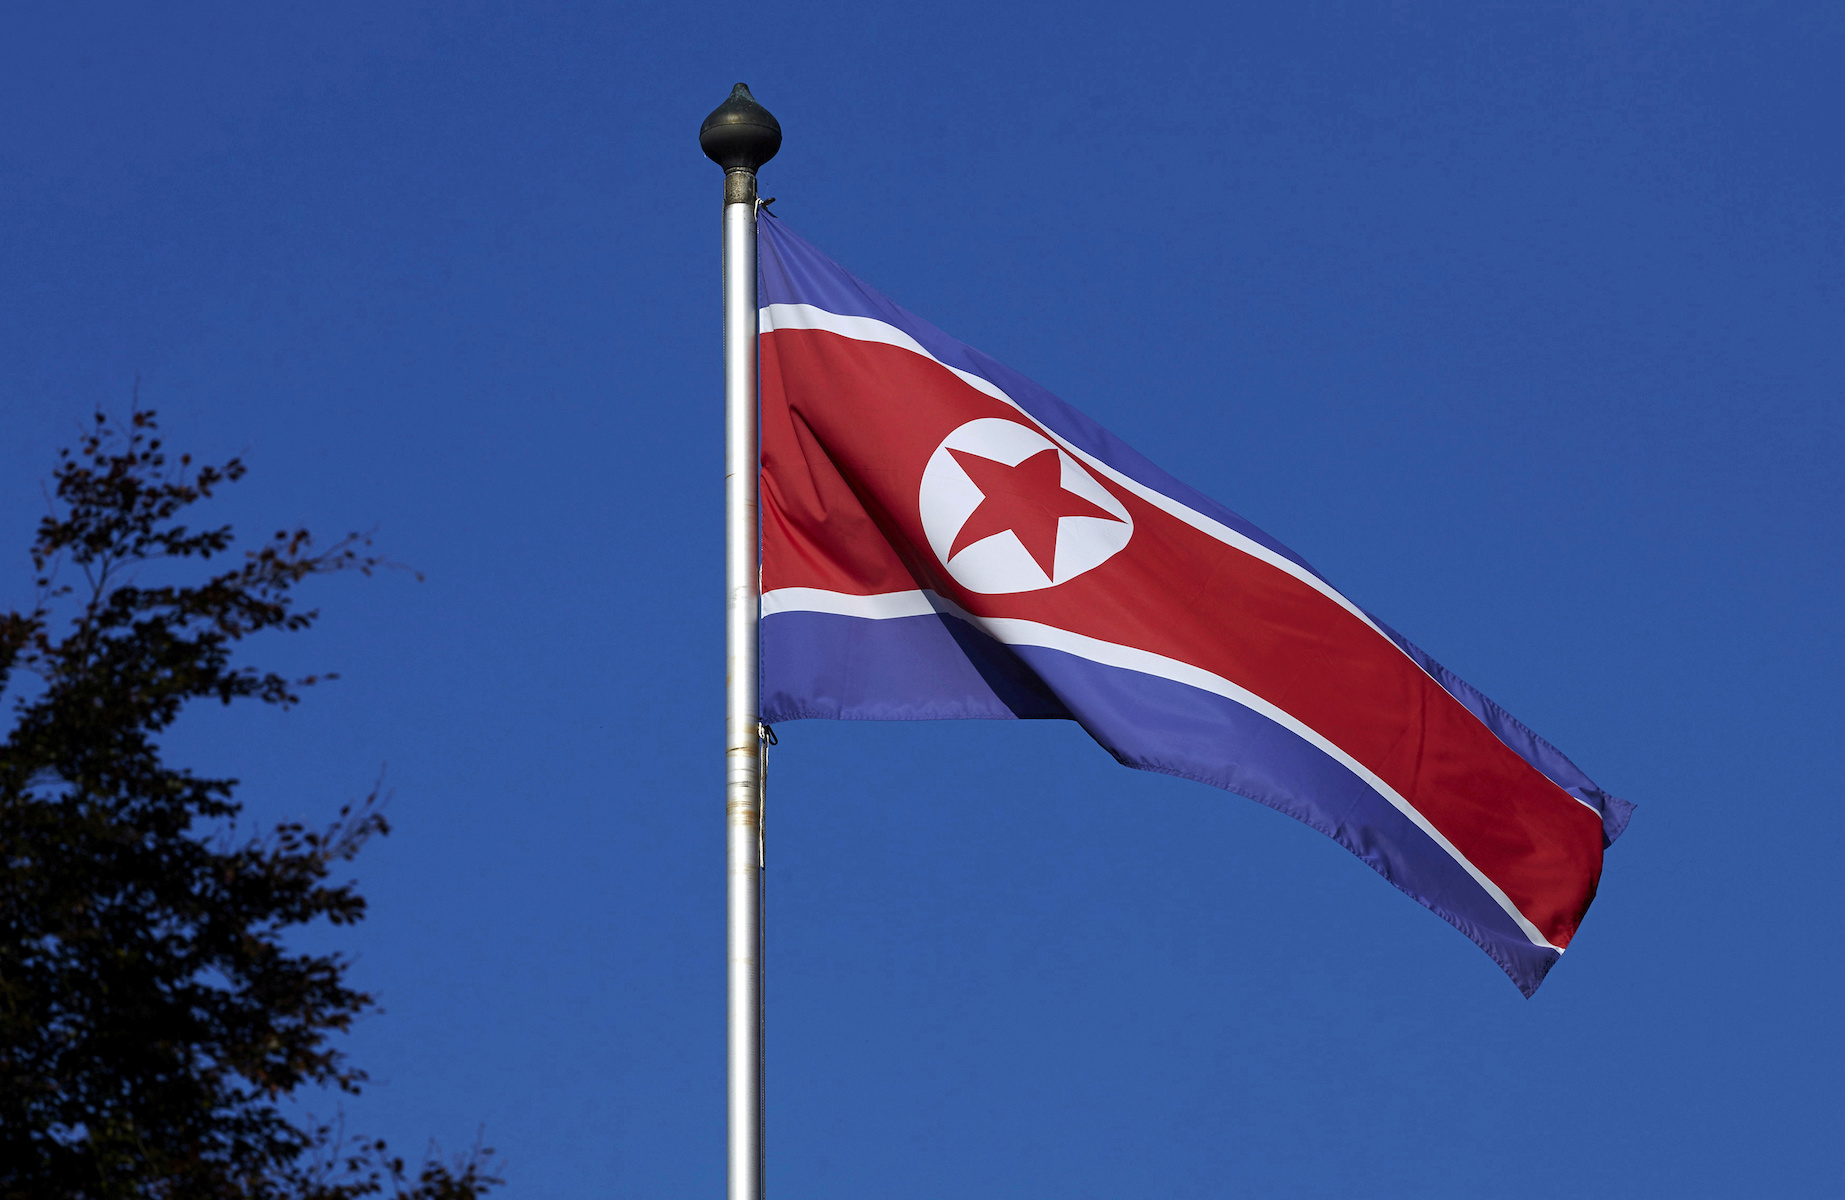 North Korea Launches Two More Short-Range Missiles Into Sea